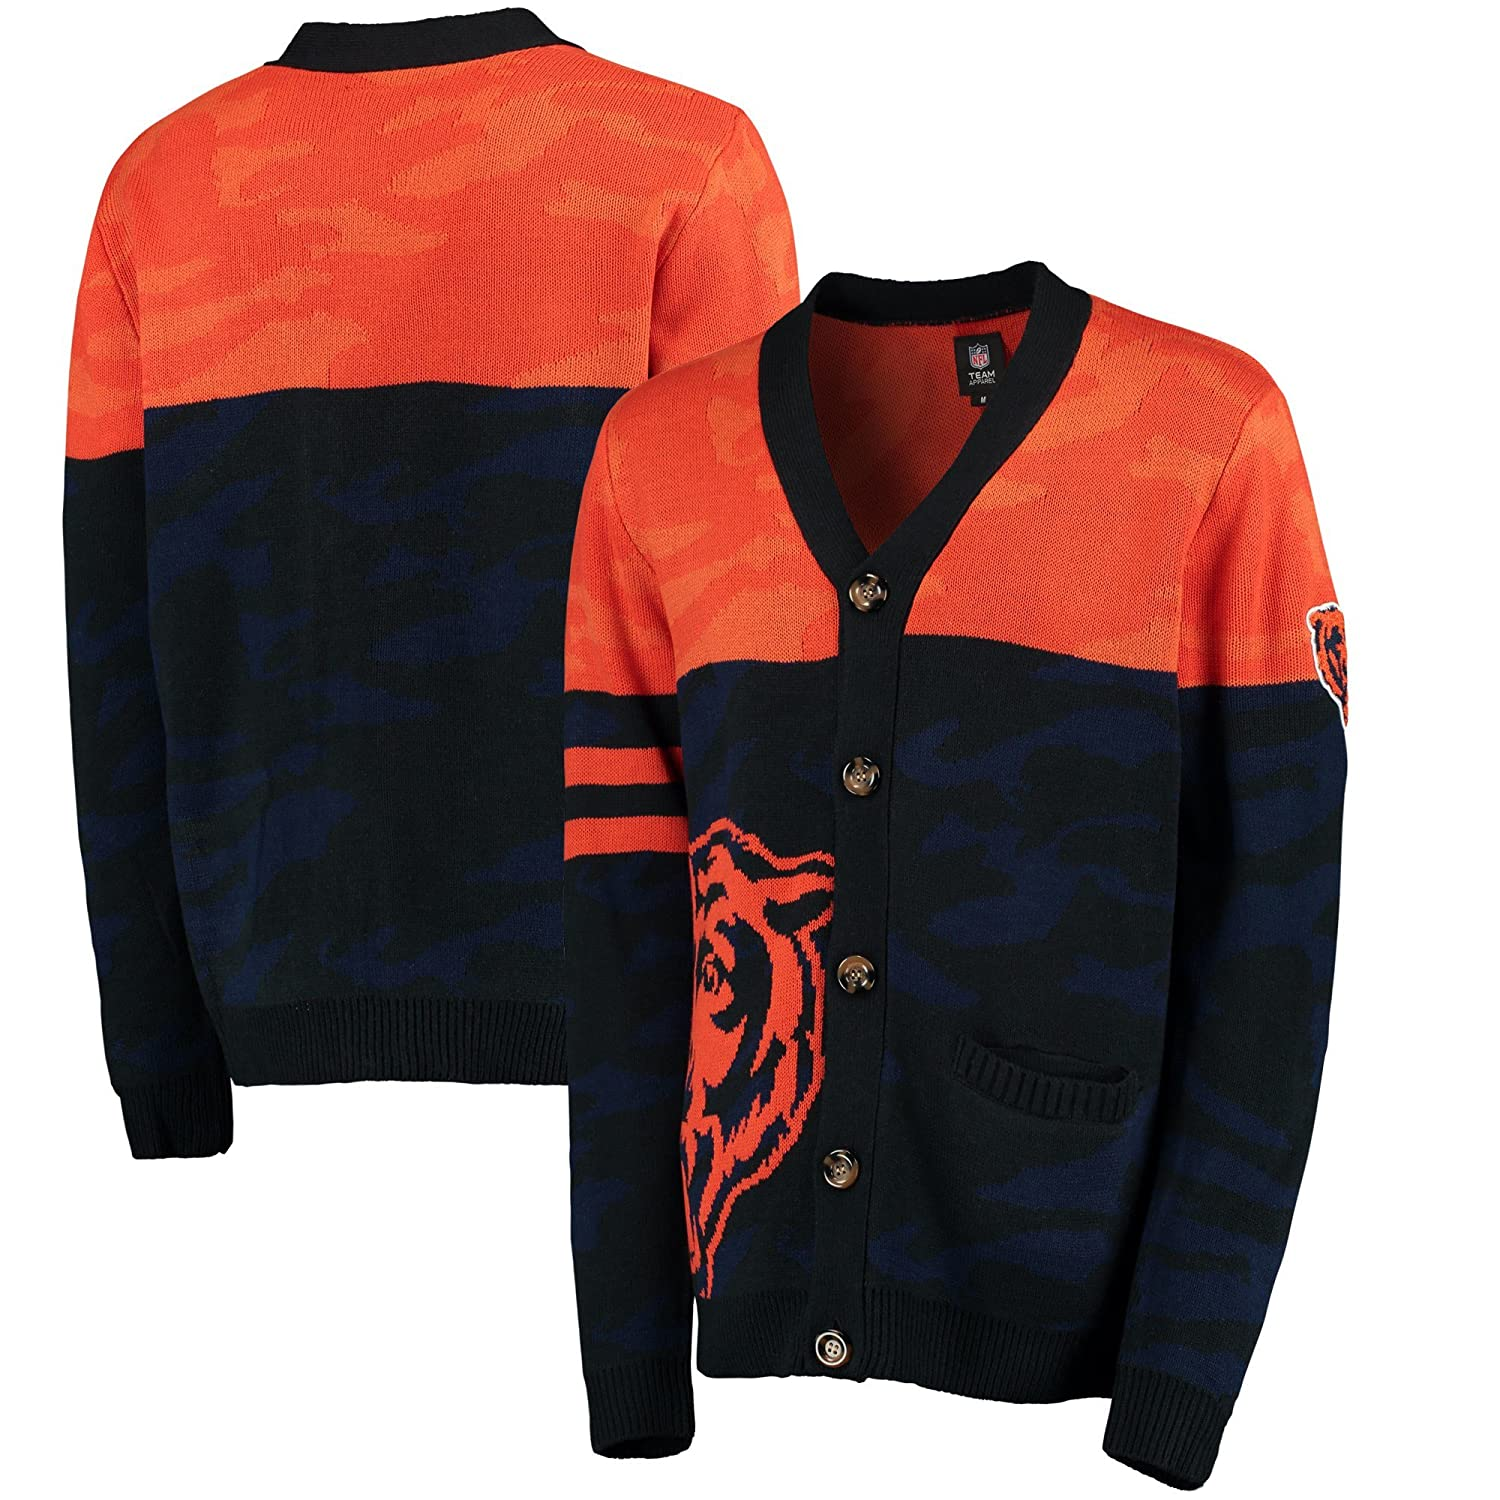 Forever Collectibles NFL Foco迷彩カーディガン Large シカゴベアーズ B07FK8CSW5